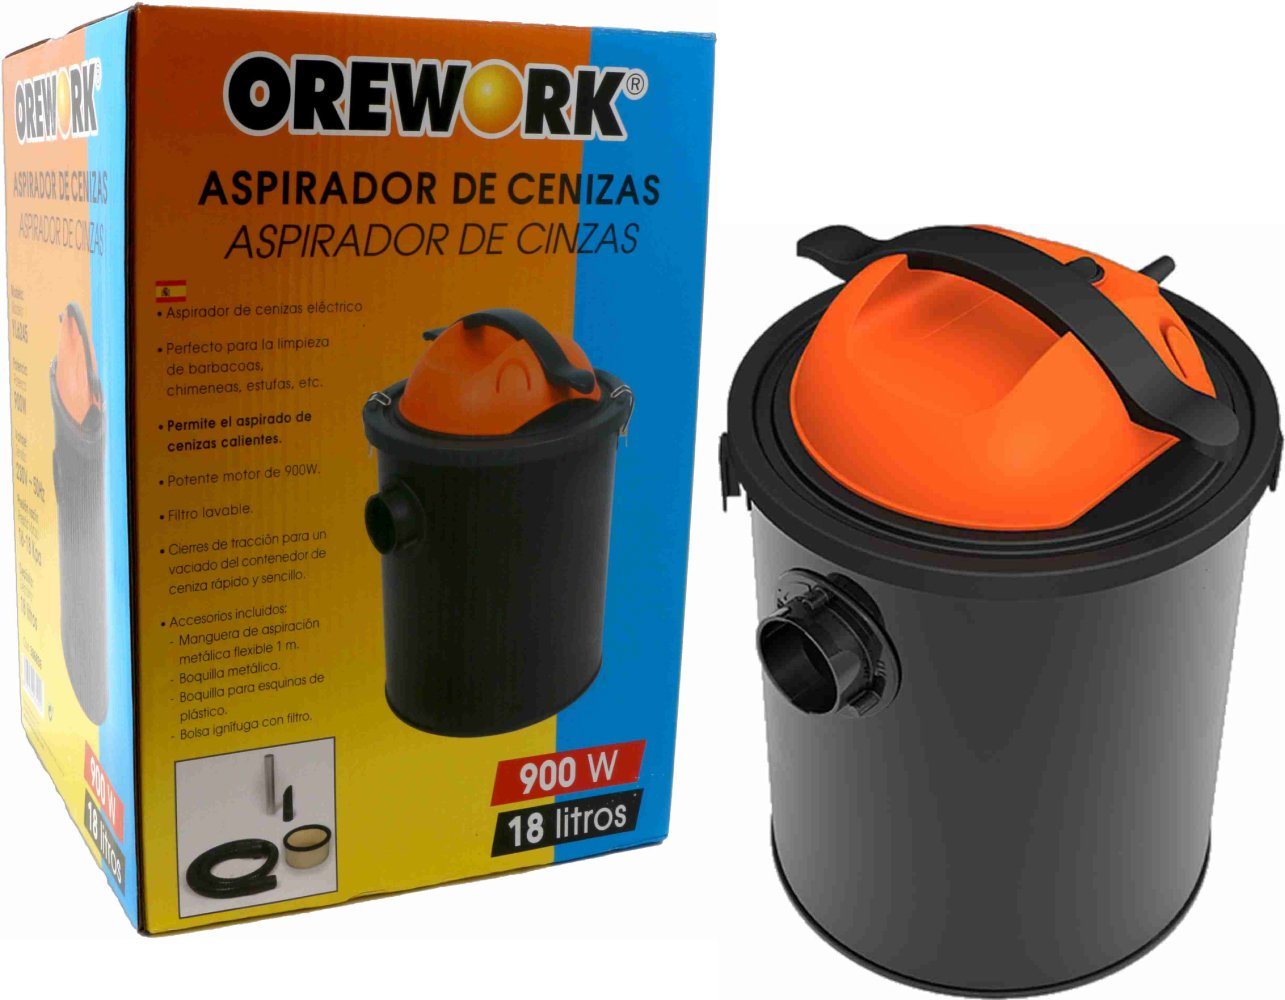 Aspirador Ceniza Hot 18 Lt 900w: Amazon.es: Hogar